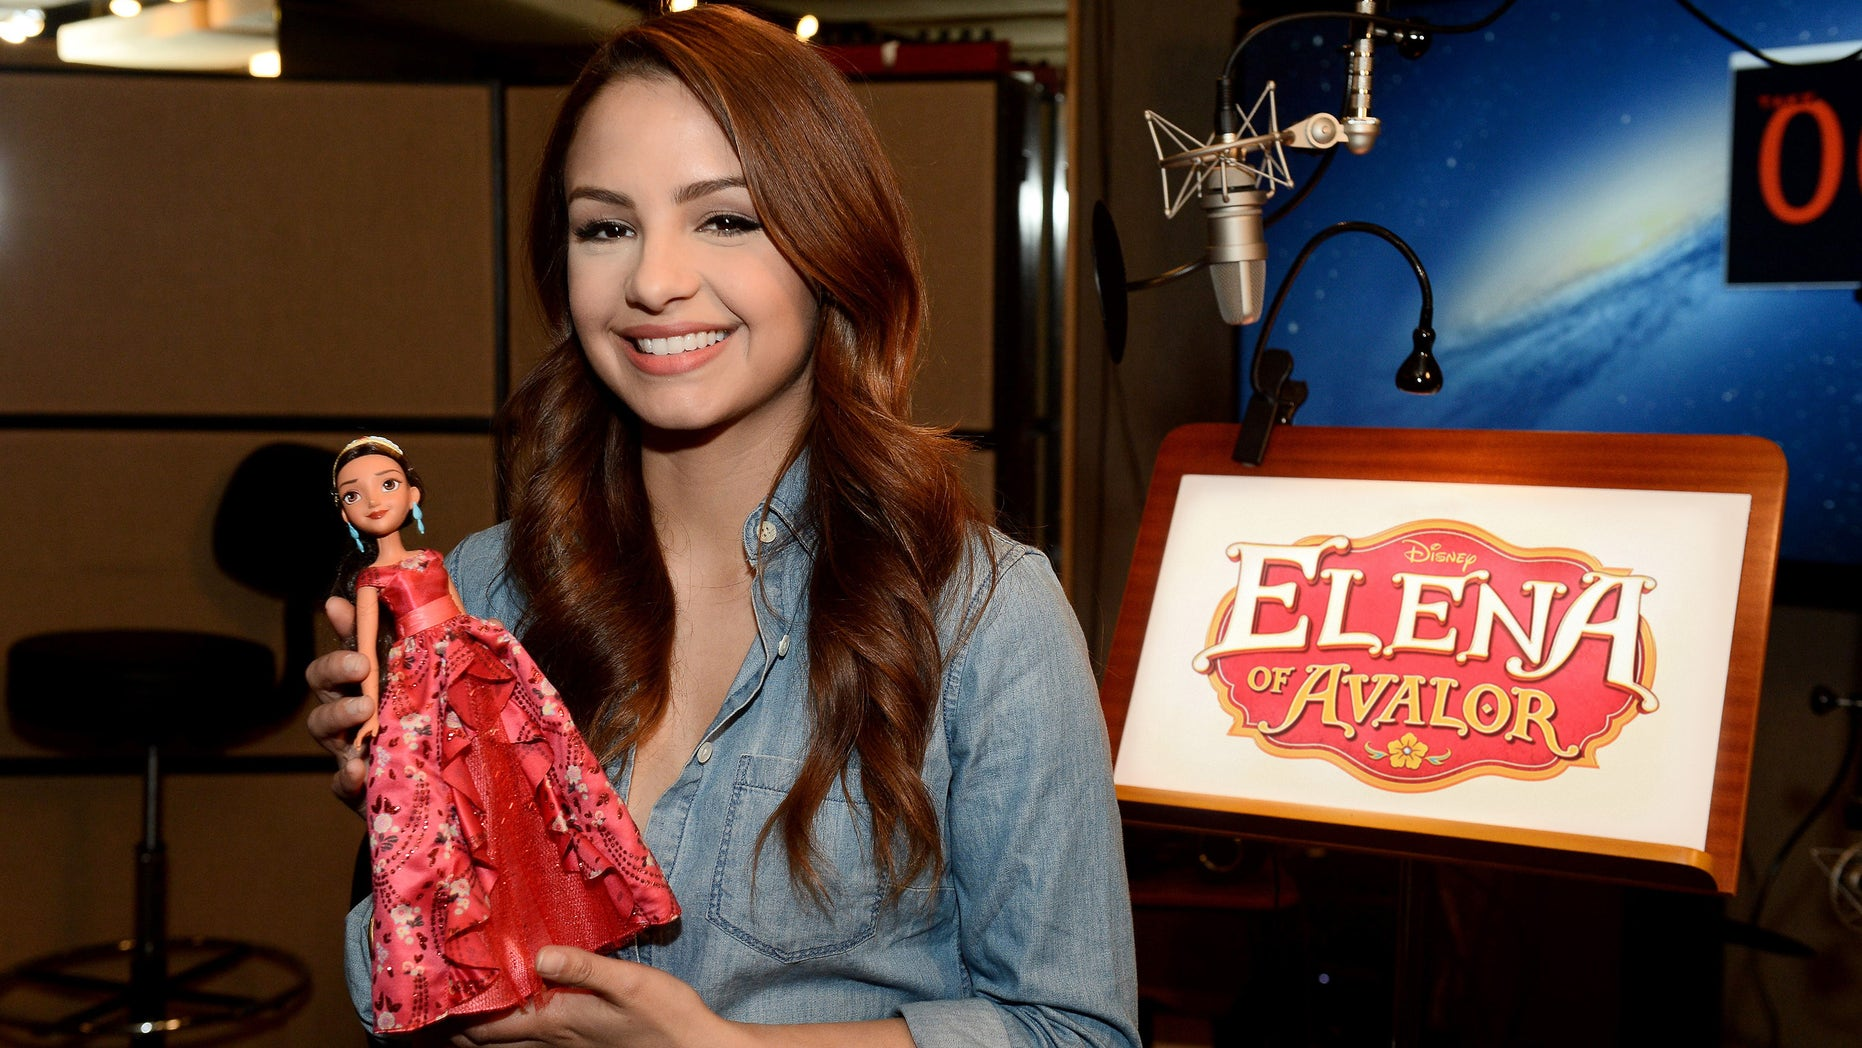 """Actress Aimee Carrero, who voices the title role in Disney's """"Elena of Avalor,"""" gets a first-look at the new Elena doll during a recording session for the series in Burbank, California.  The doll, from Hasbro, will debut at Toy Fair in New York City on Friday, February 12, and """"Elena of Avalor,"""" a new animated TV series set in a fairytale kingdom inspired by Latin cultures and folklore, will premiere this summer on Disney Channel. (Disney Junior/Matt Petit)AIMEE CARRERO"""